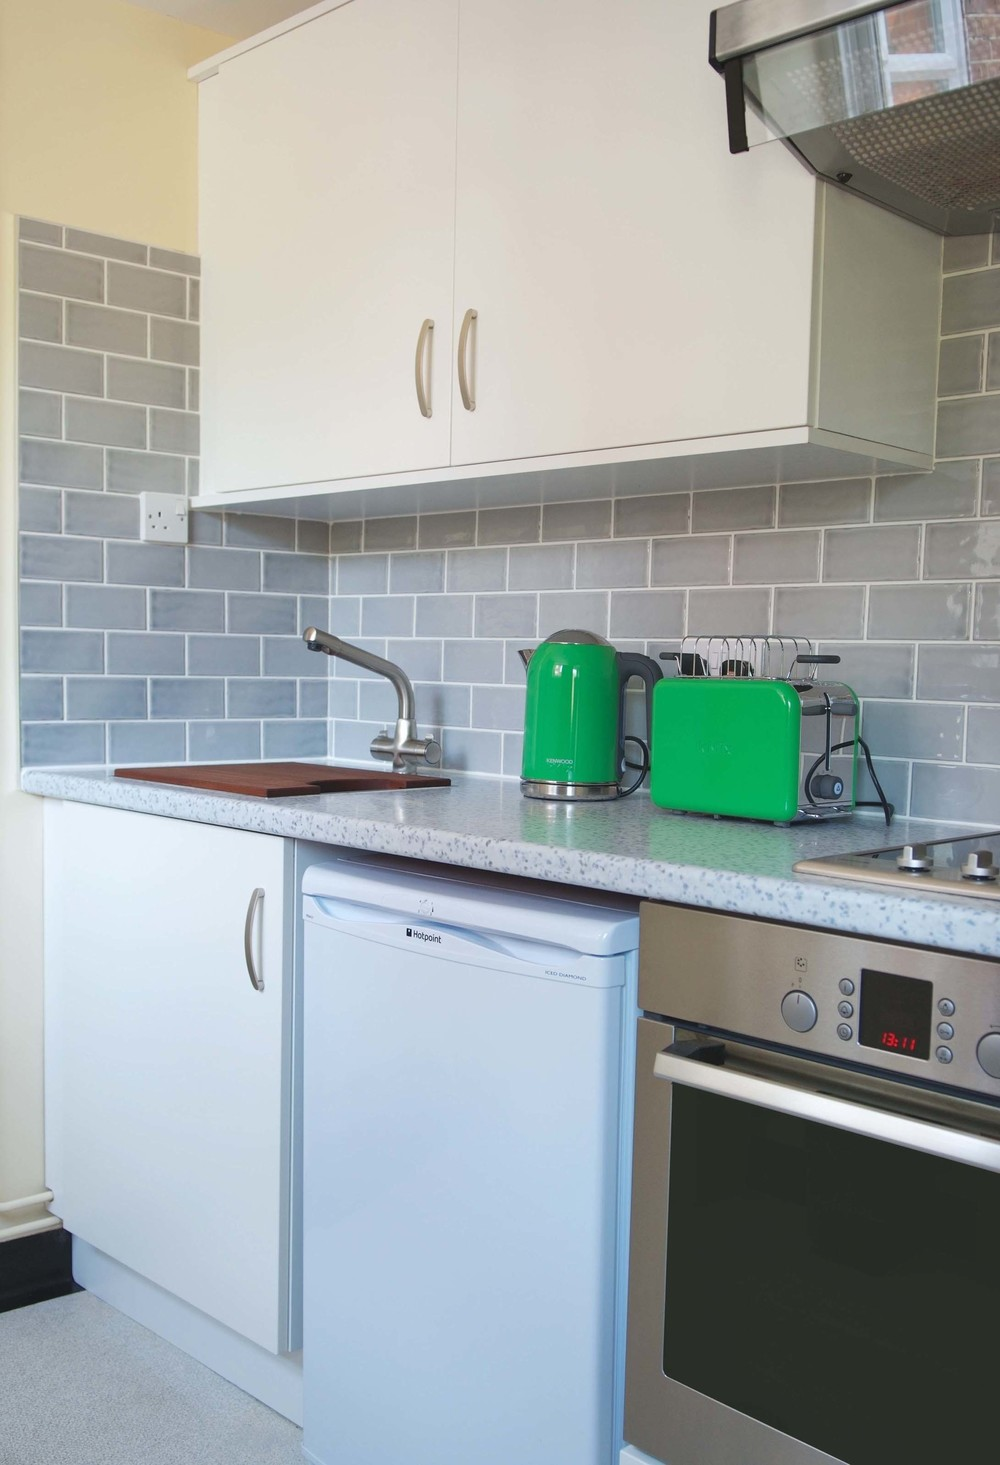 The galley kitchen has cutlery and crockery for four people. There are two hobs, a full oven, fridge, kettle & toaster. Provisions can be provided for late arrivals.